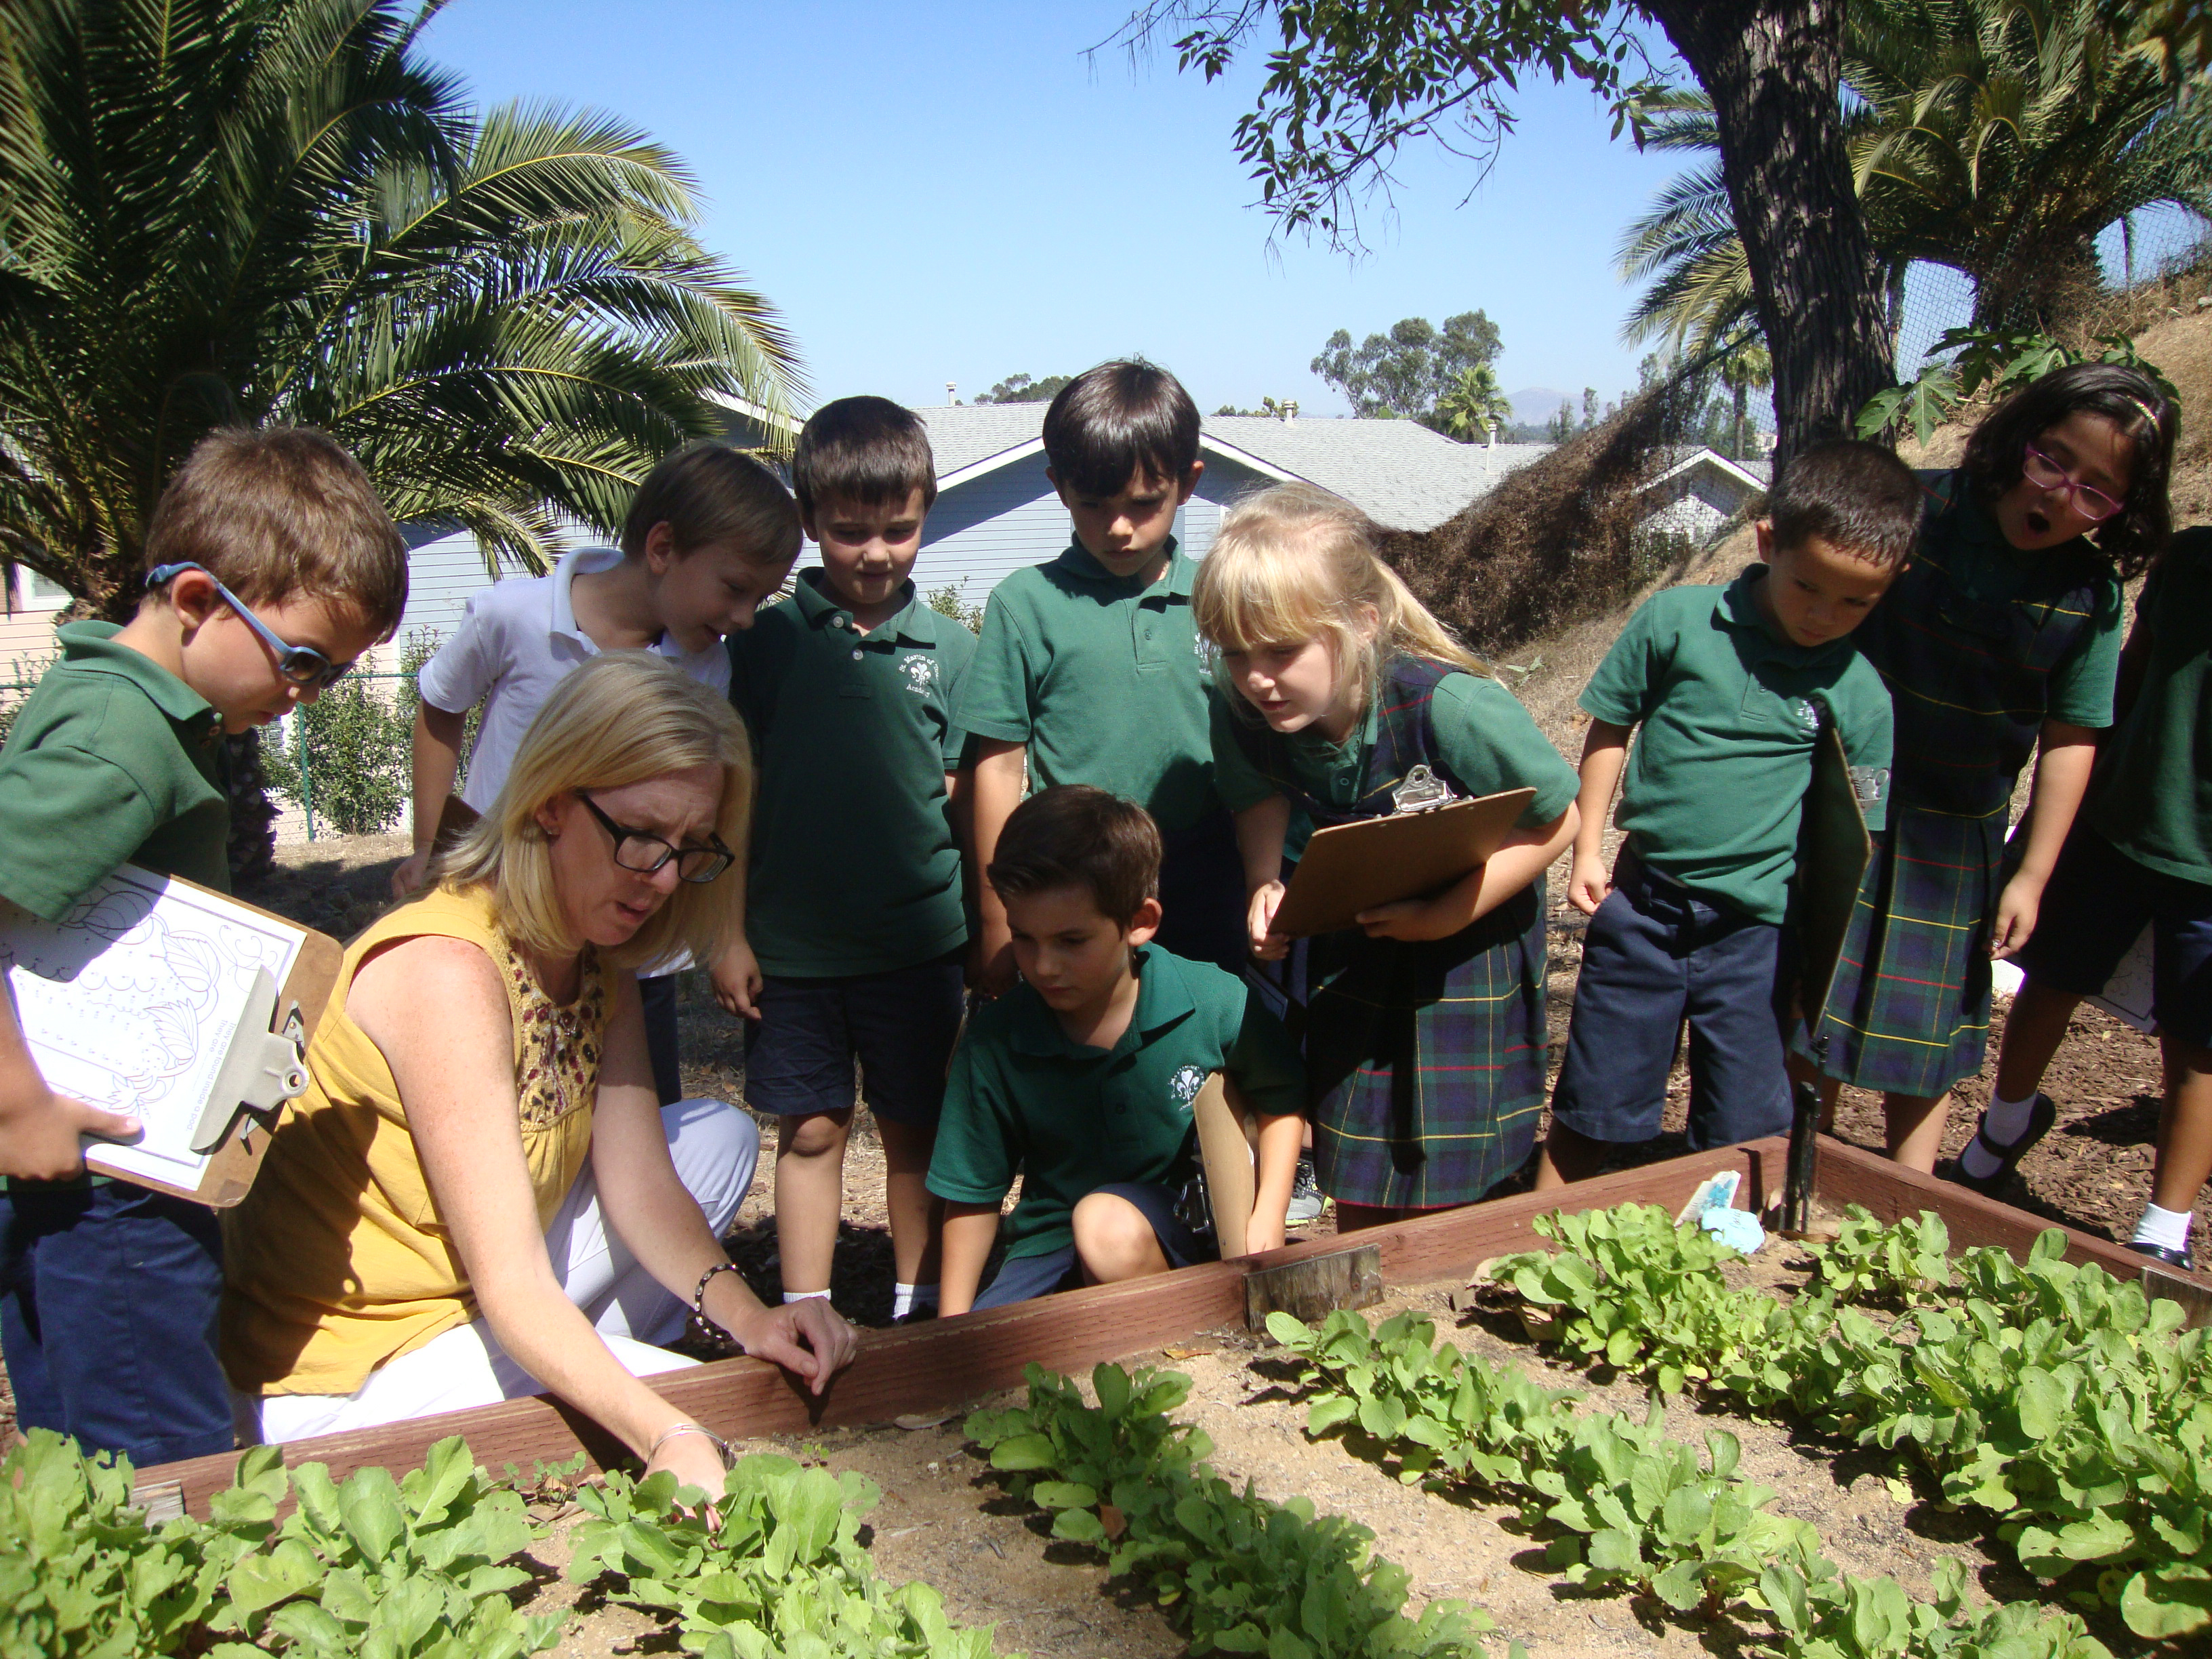 Students learn about growing food in the Community Garden.